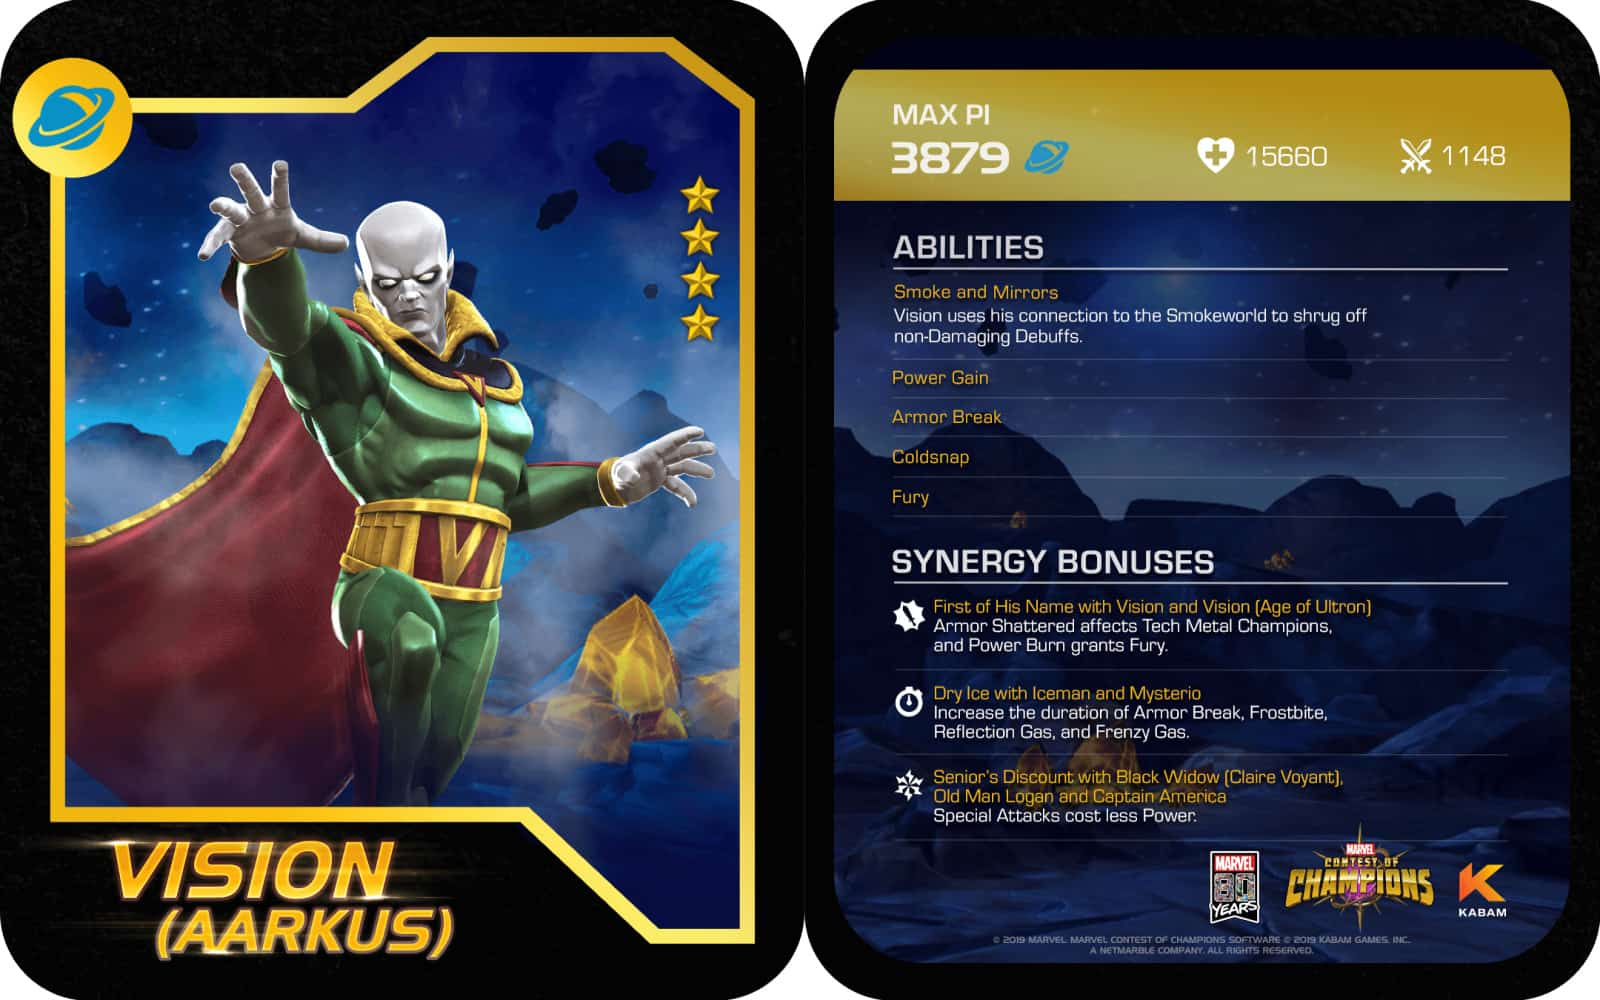 Marvel Contest of Champions Vision Abilities